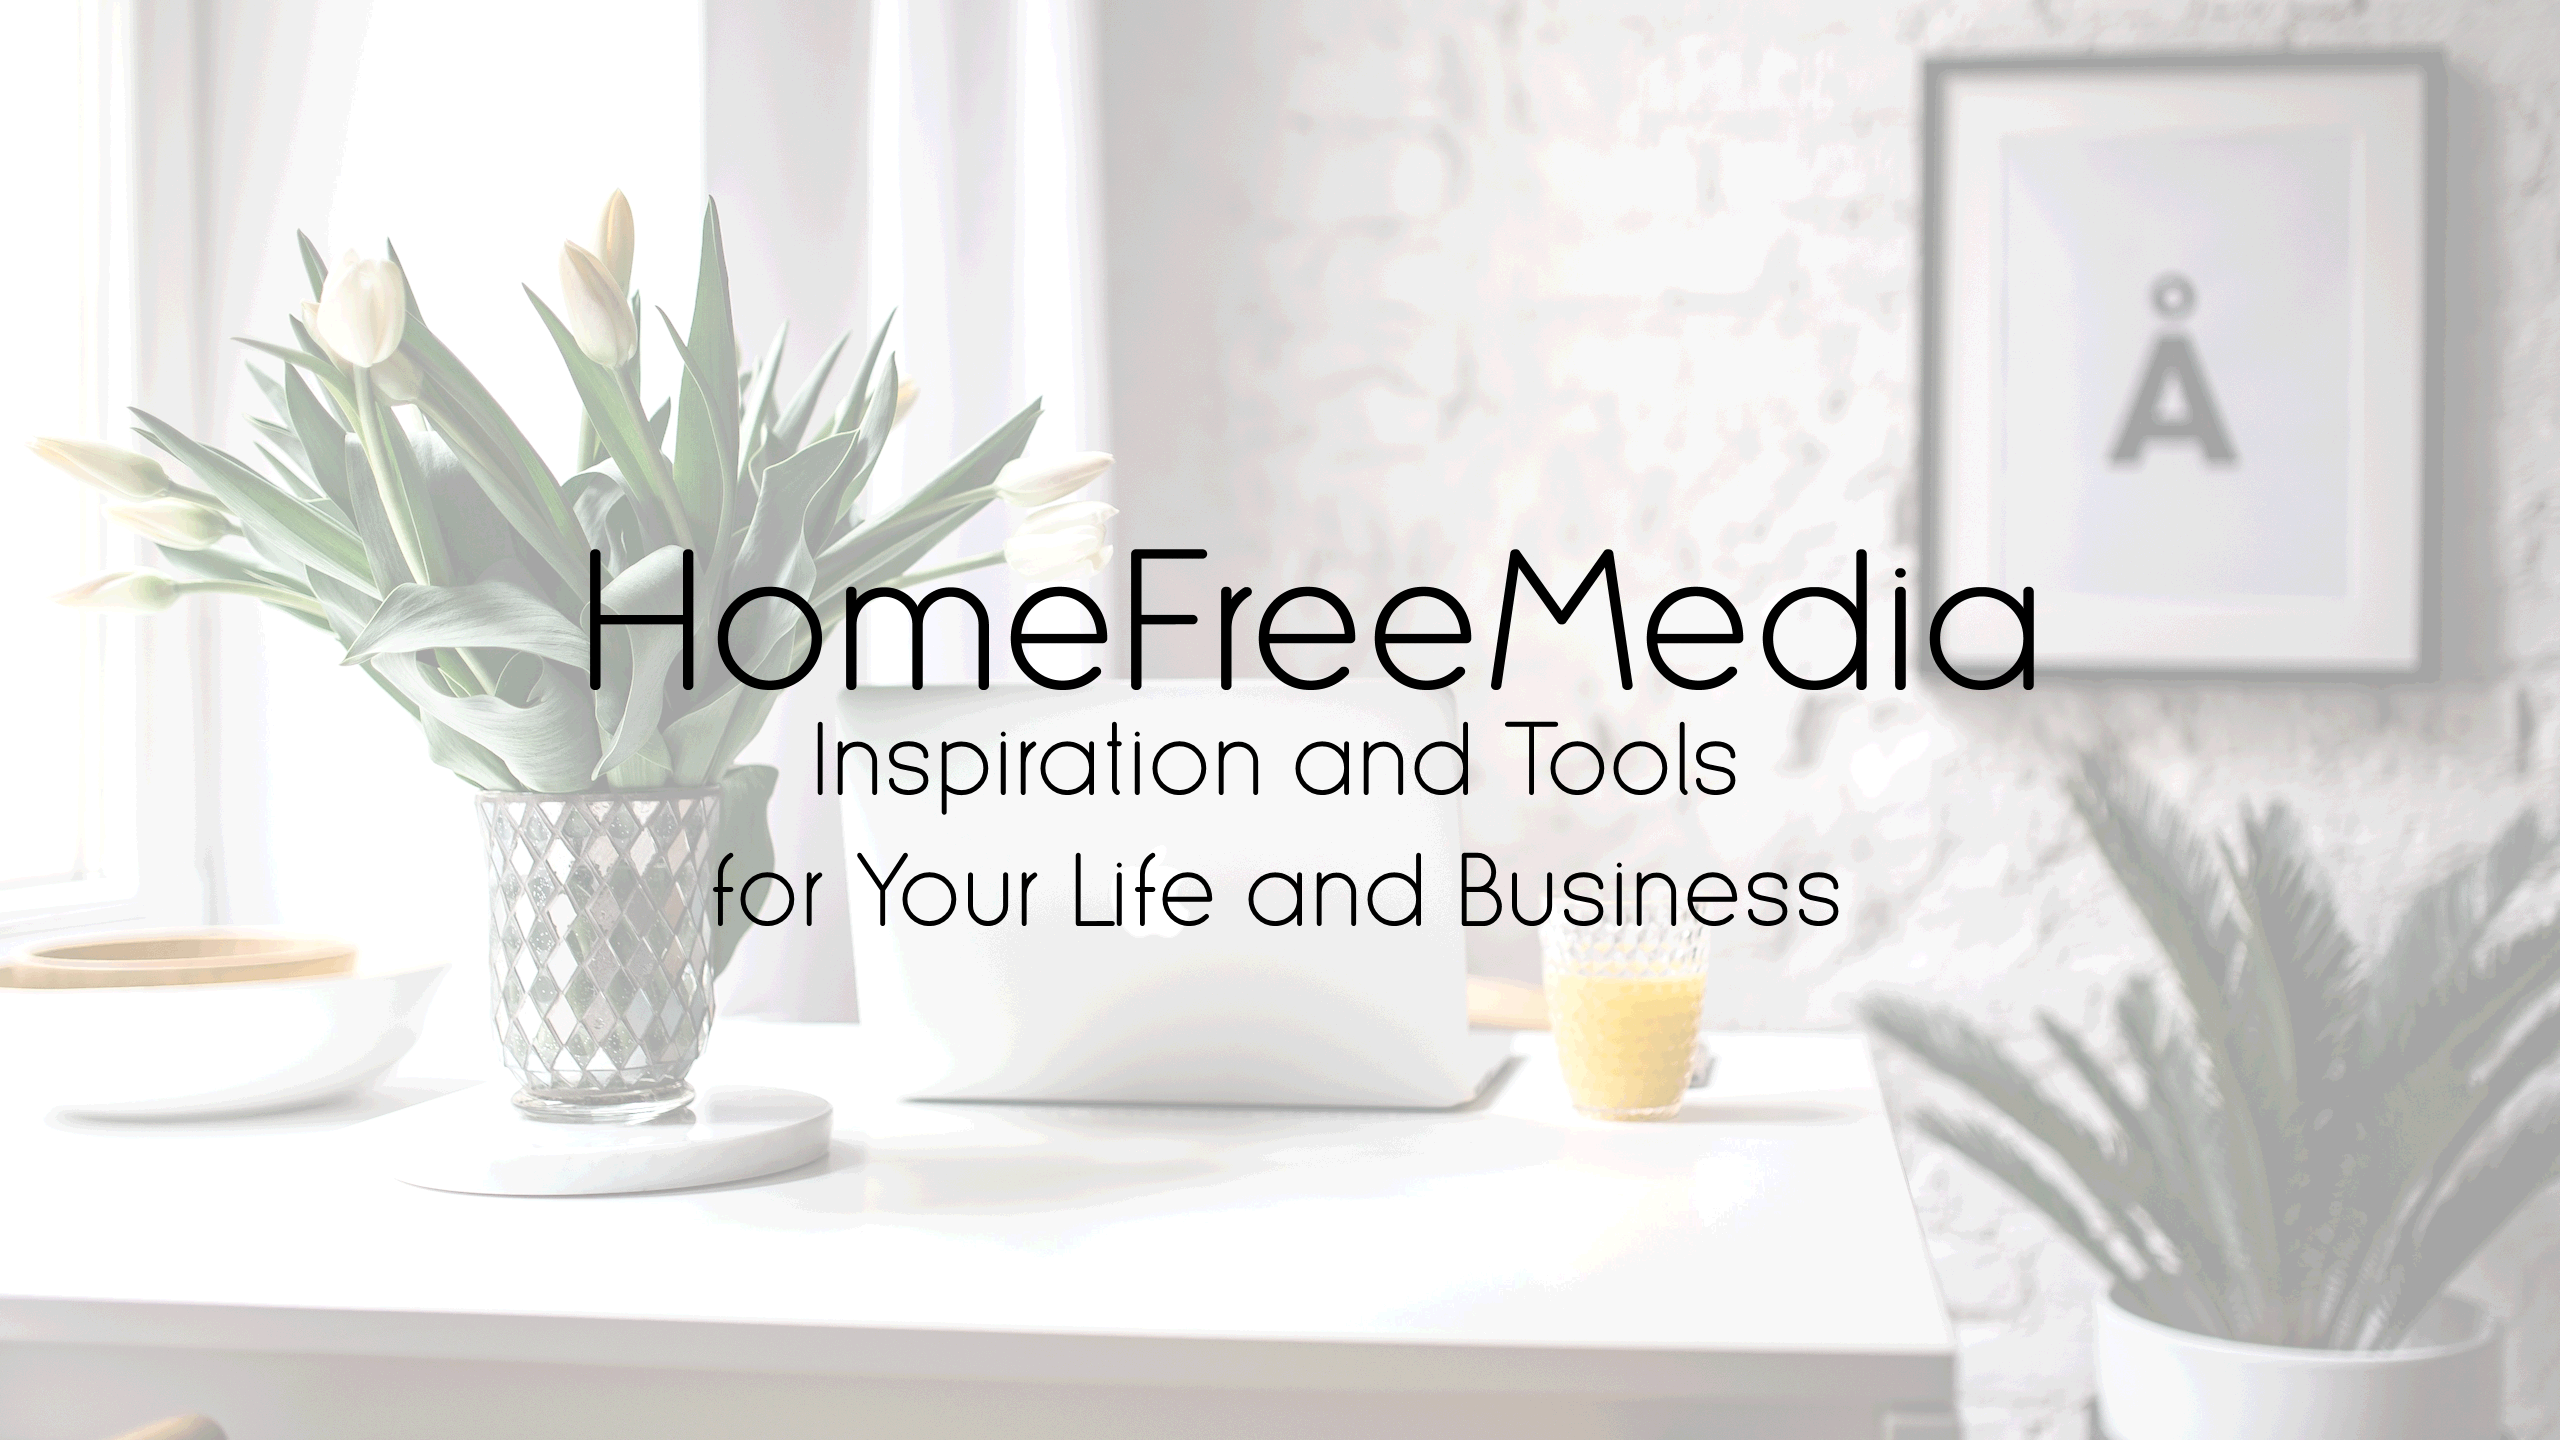 HomeFreeMedia - Inspiration and Tools for Your Life and Business